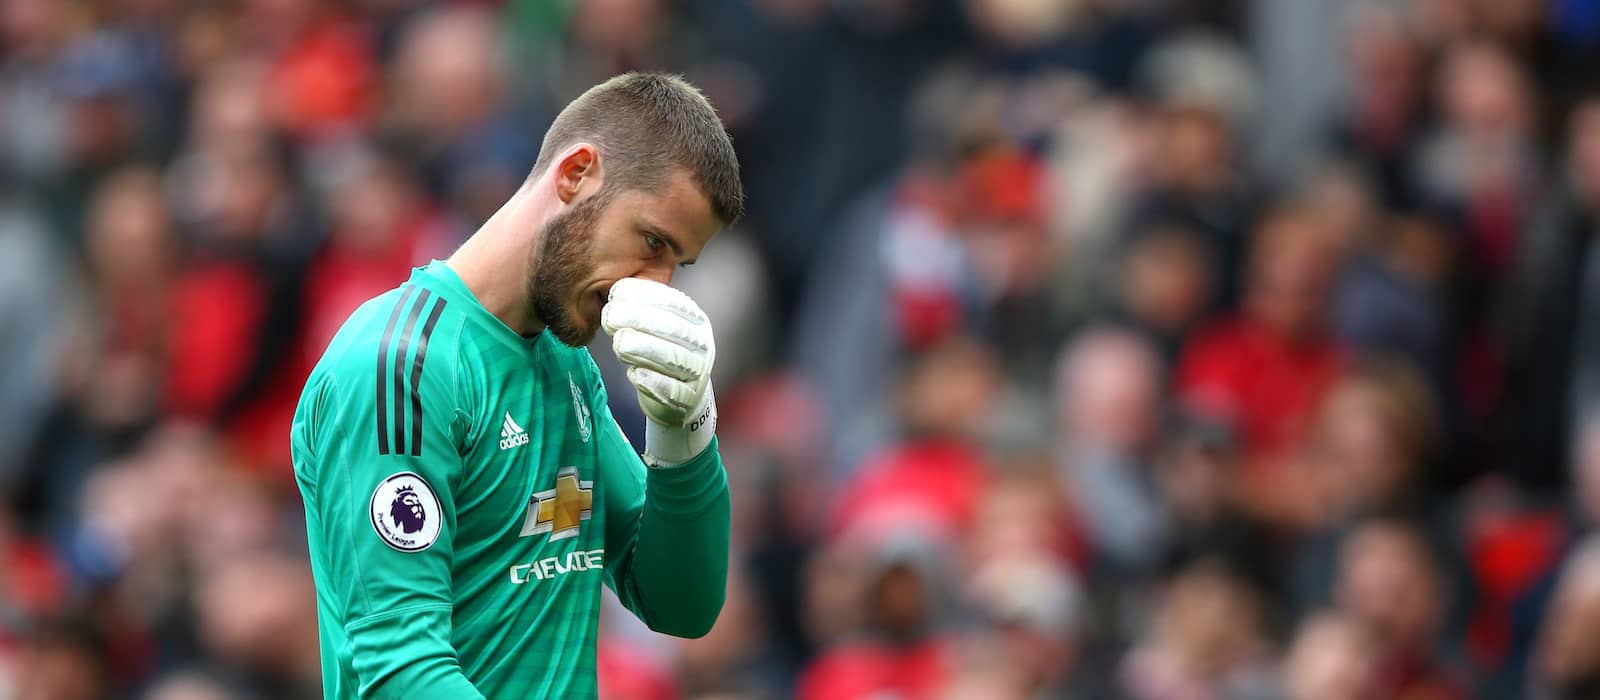 Manchester United vs. Liverpool: Potential XI without Paul Pogba and David de Gea